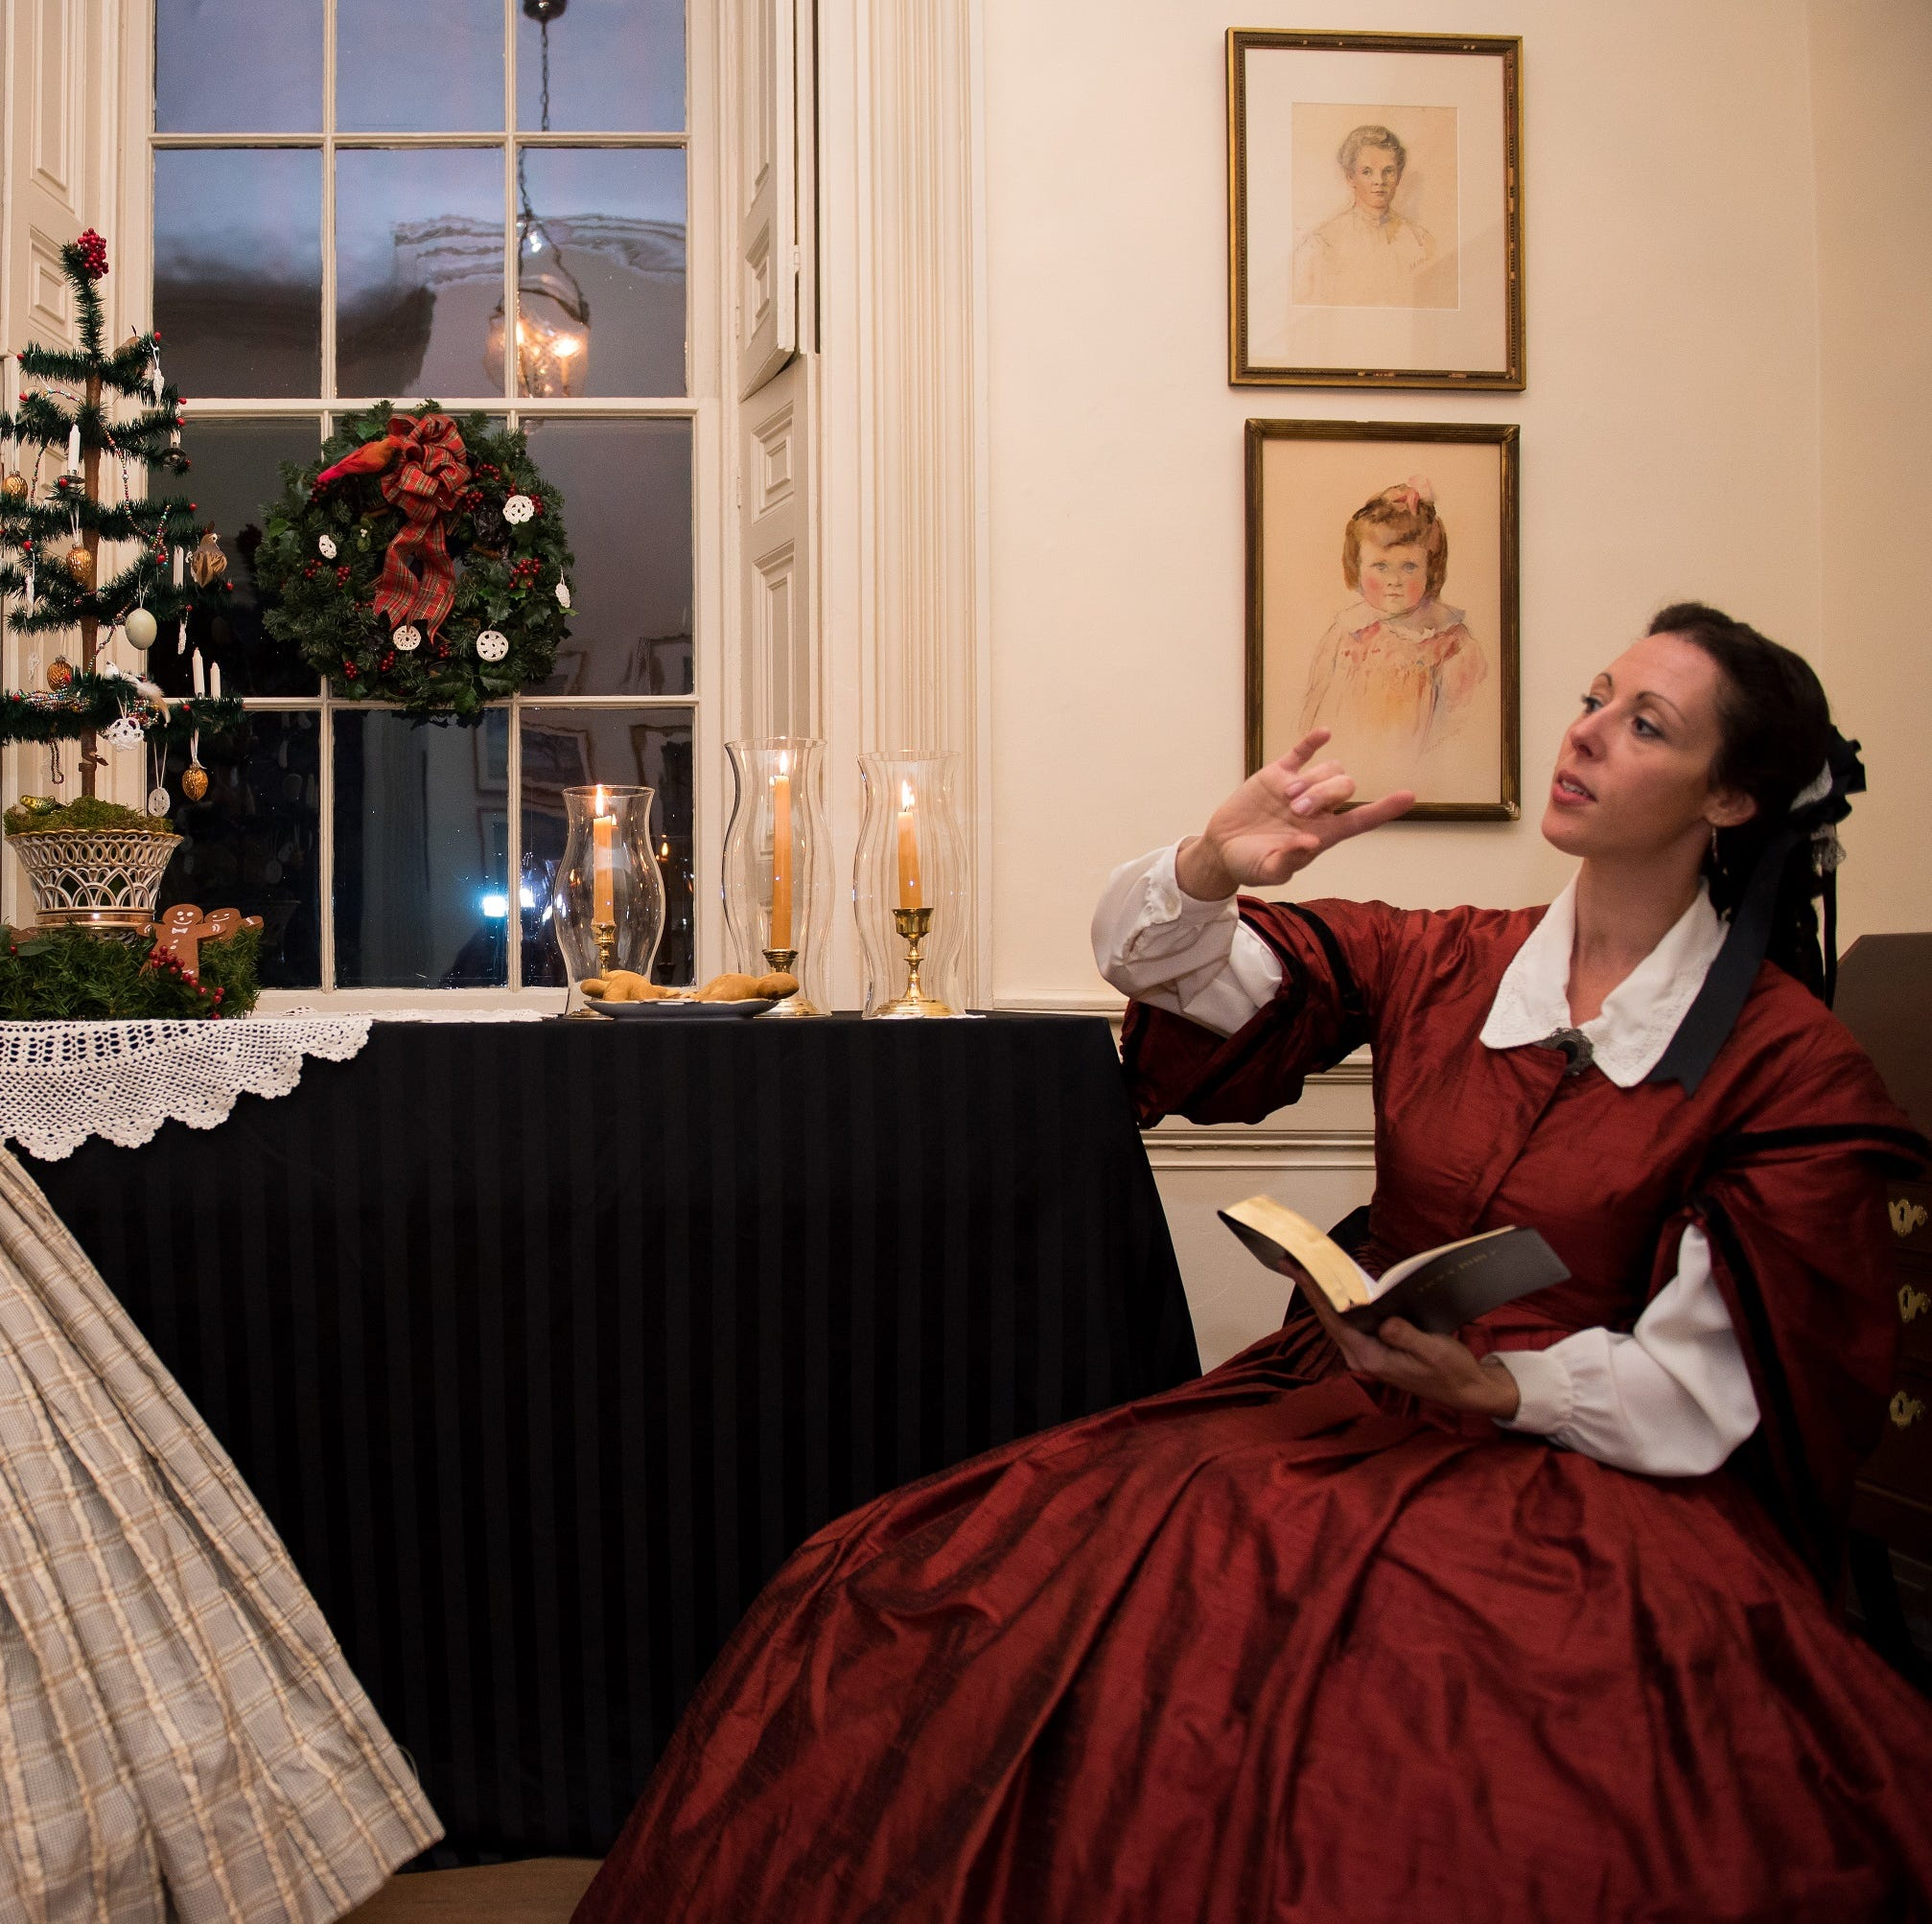 Experience Christmases past with holiday tours of antebellum homes